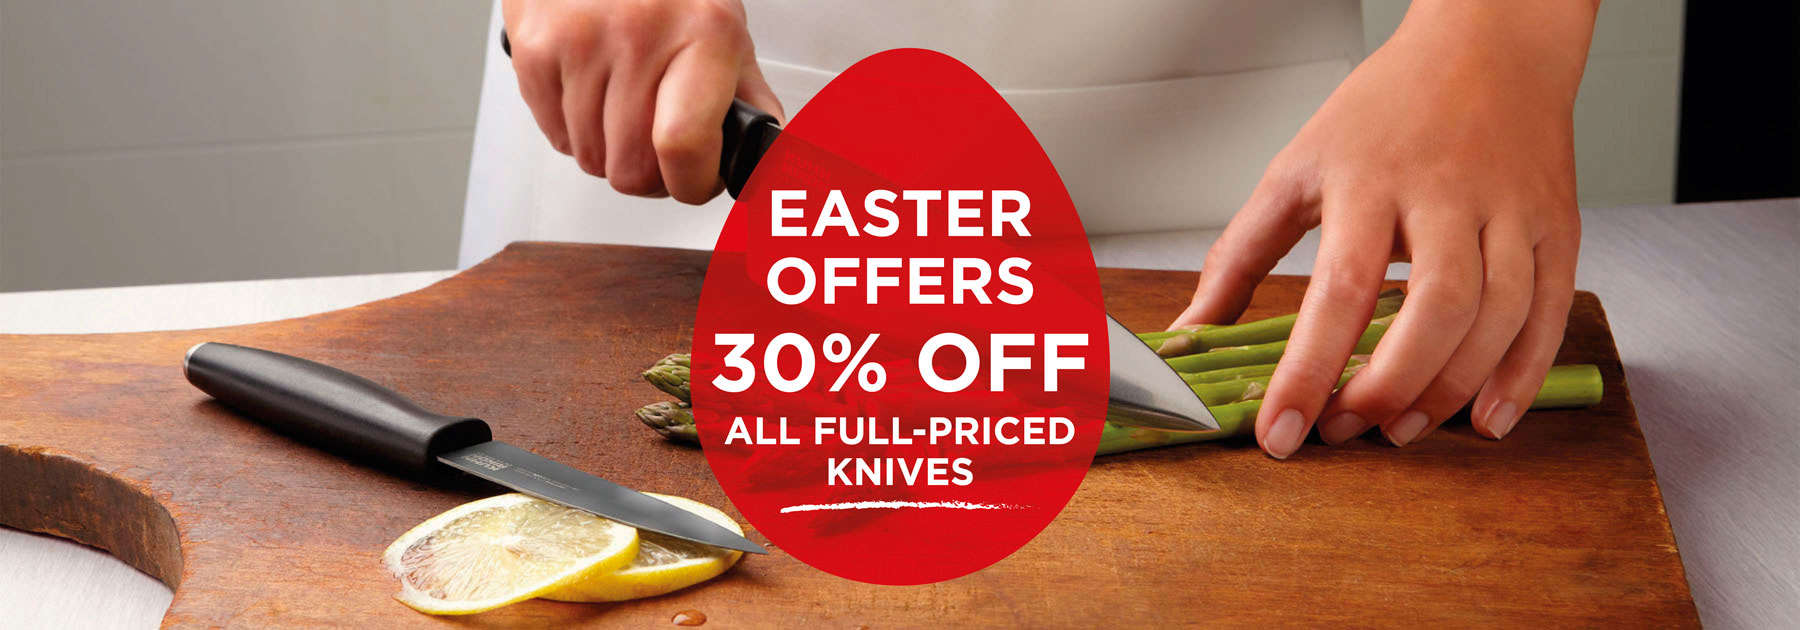 discount, offer, easter, knives